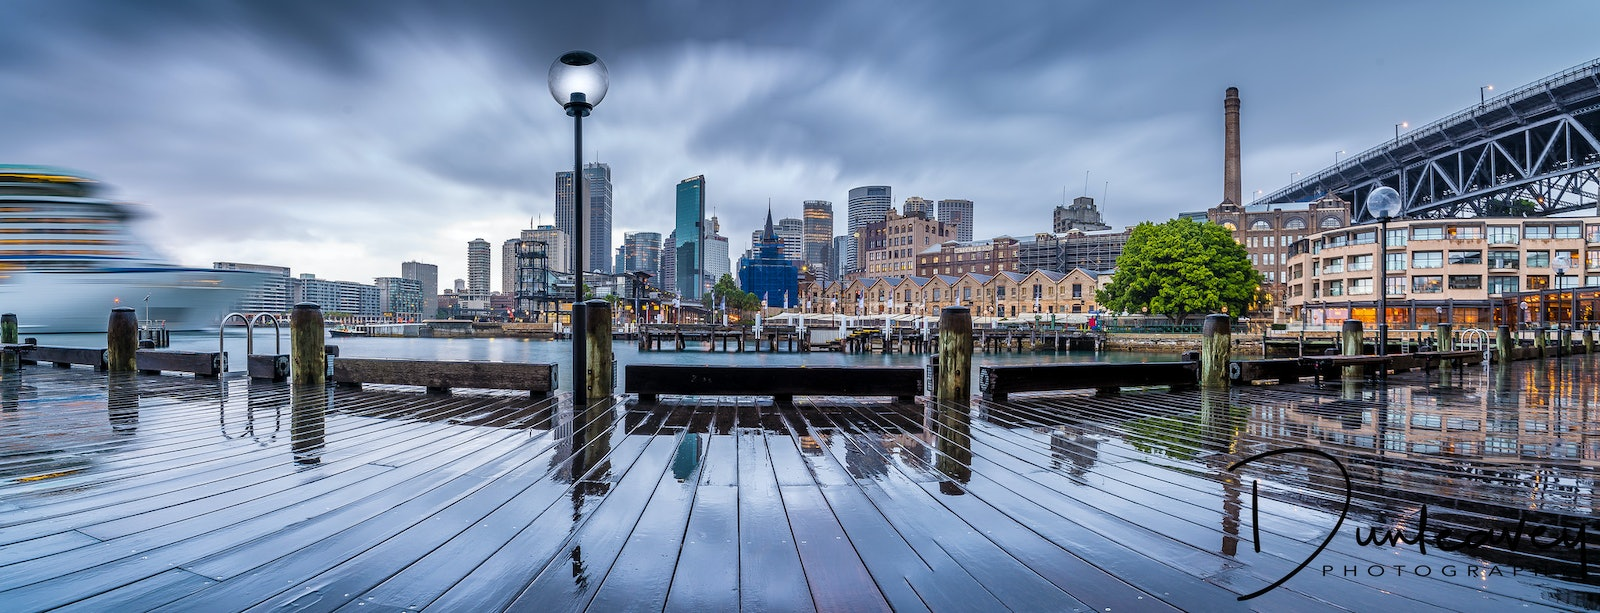 Circular Quay Panorama - Dawn at Circular Quay, looking towards Sydney CBD. Explorer of the Seas cruise ship just muscled into the shot on the left, as...